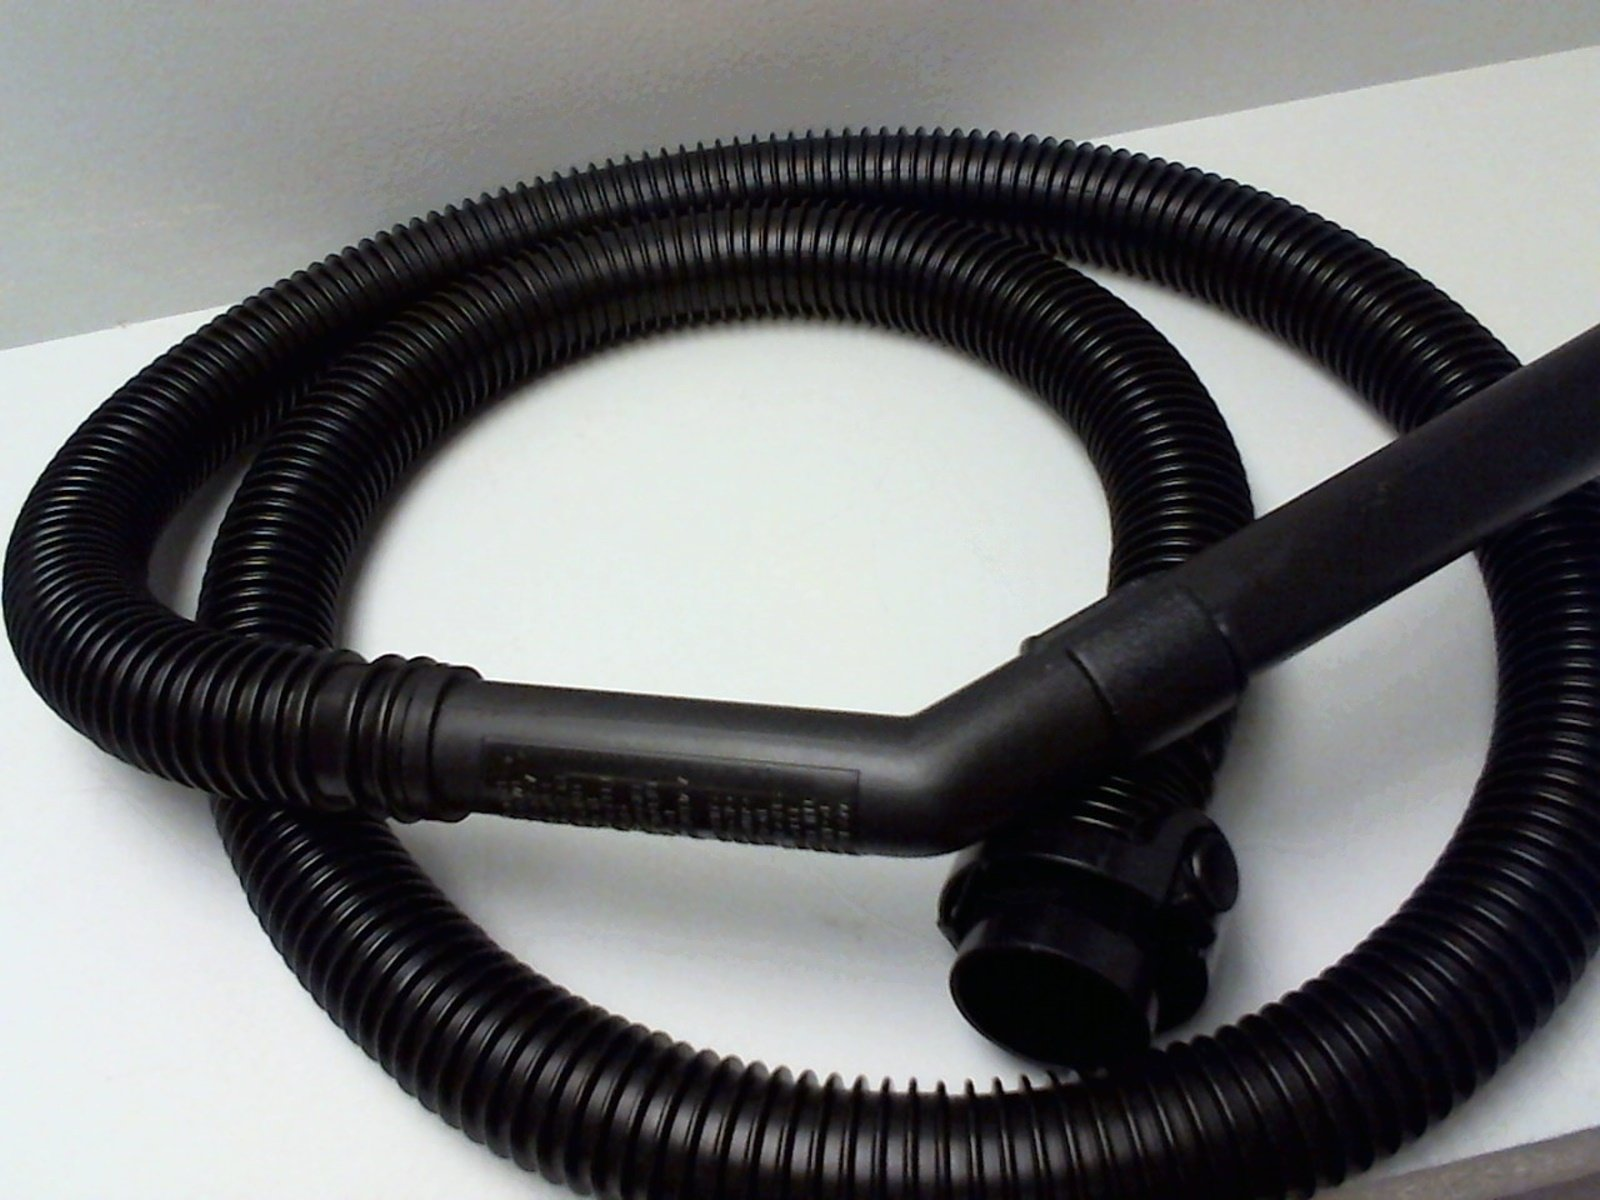 HOSE S3681 MIGHTY MITE